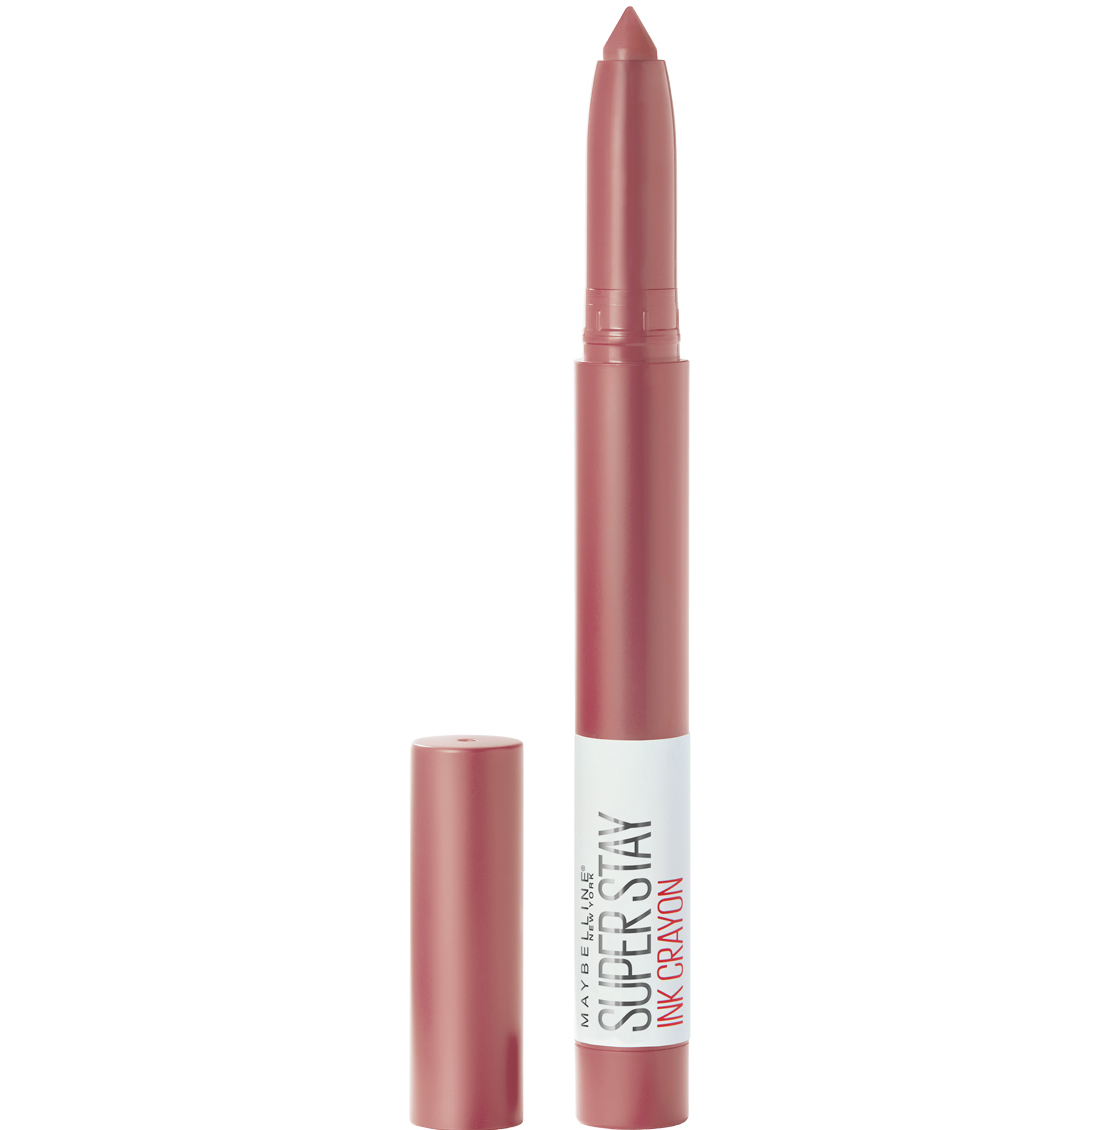 Maybelline-Superstay-Matte-Lip-Crayon-12hr-lead-the-way-041554558777-O-US